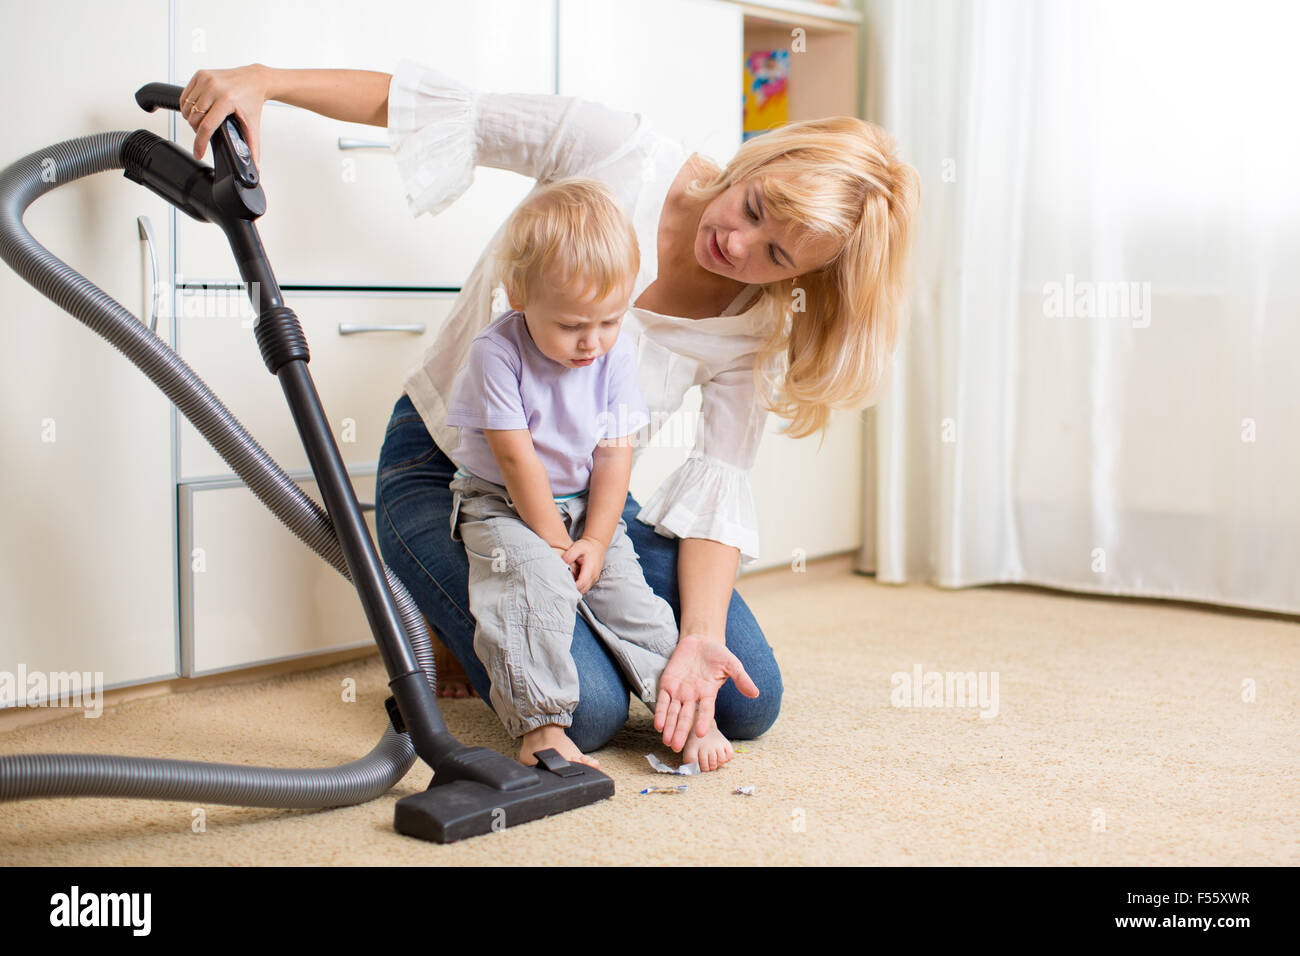 Mother teaches her child son room cleaning - Stock Image